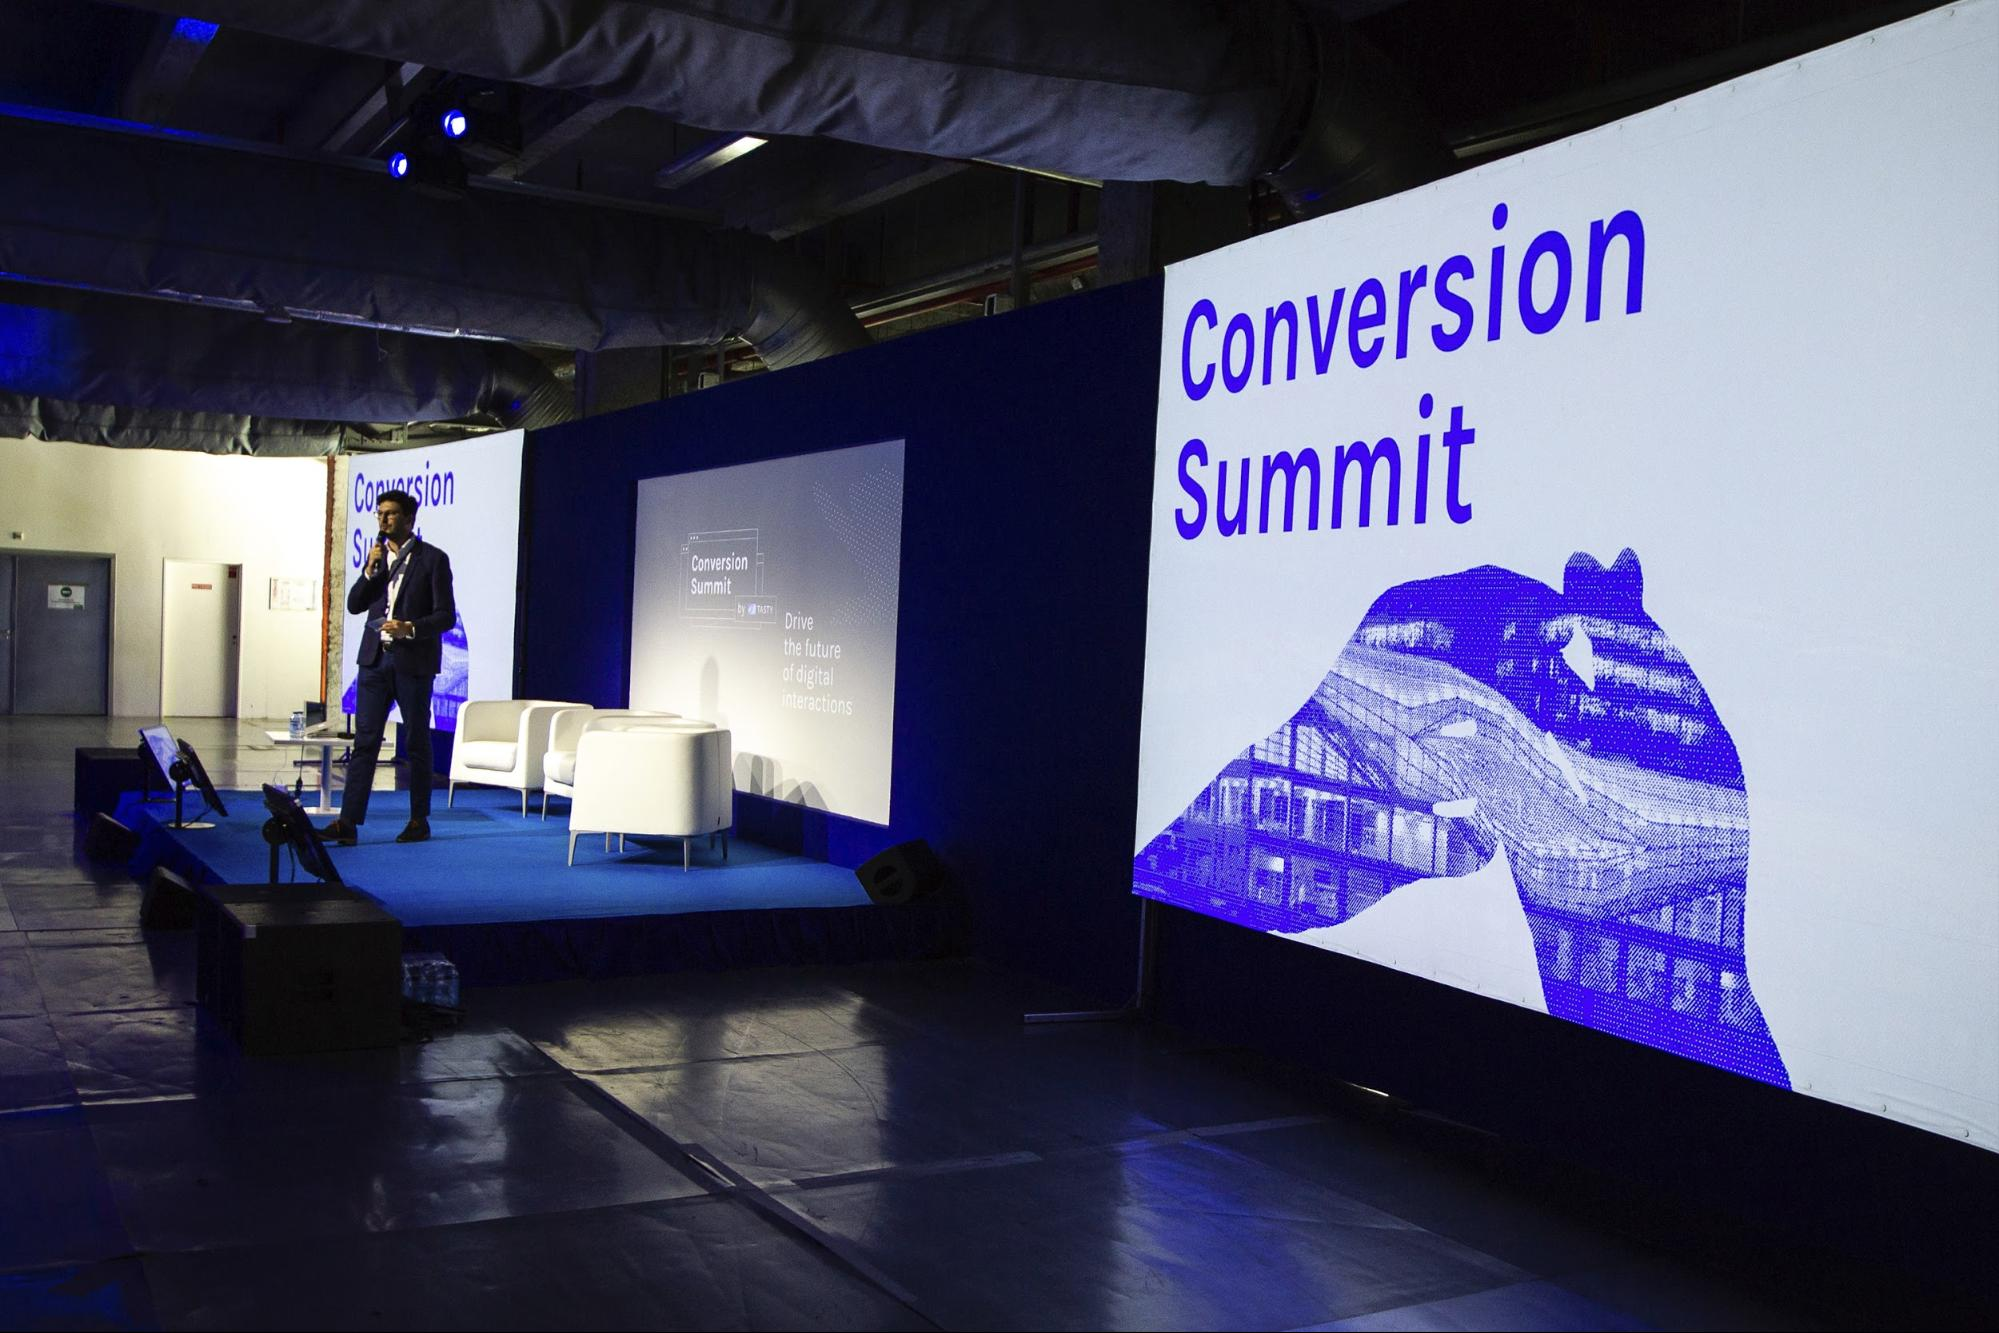 Conversion Summit